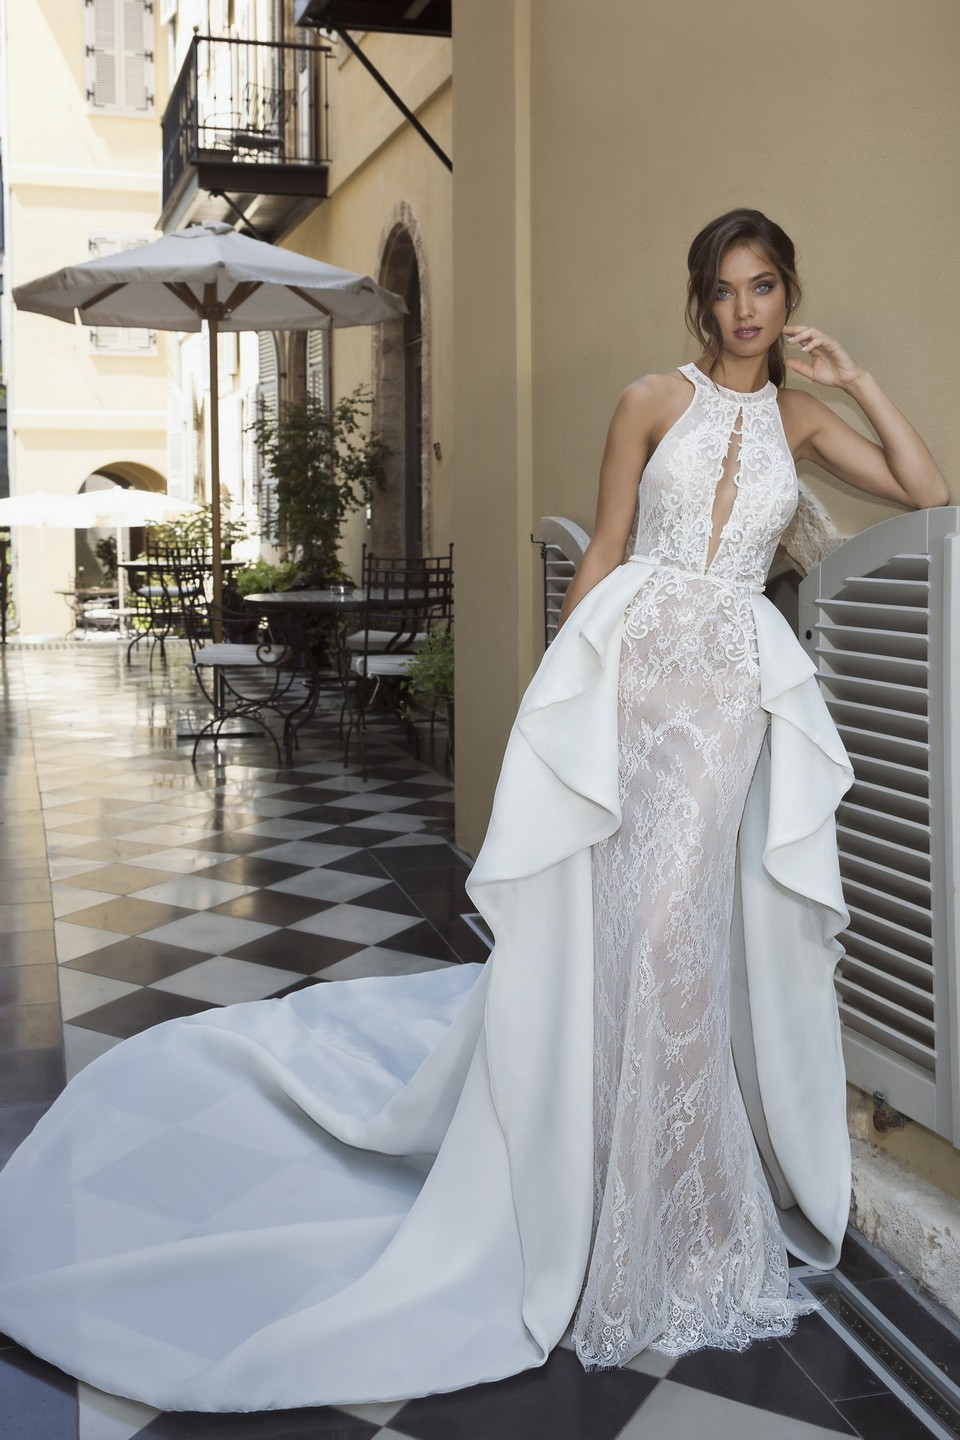 Elegant form fitted wedding dress with long train